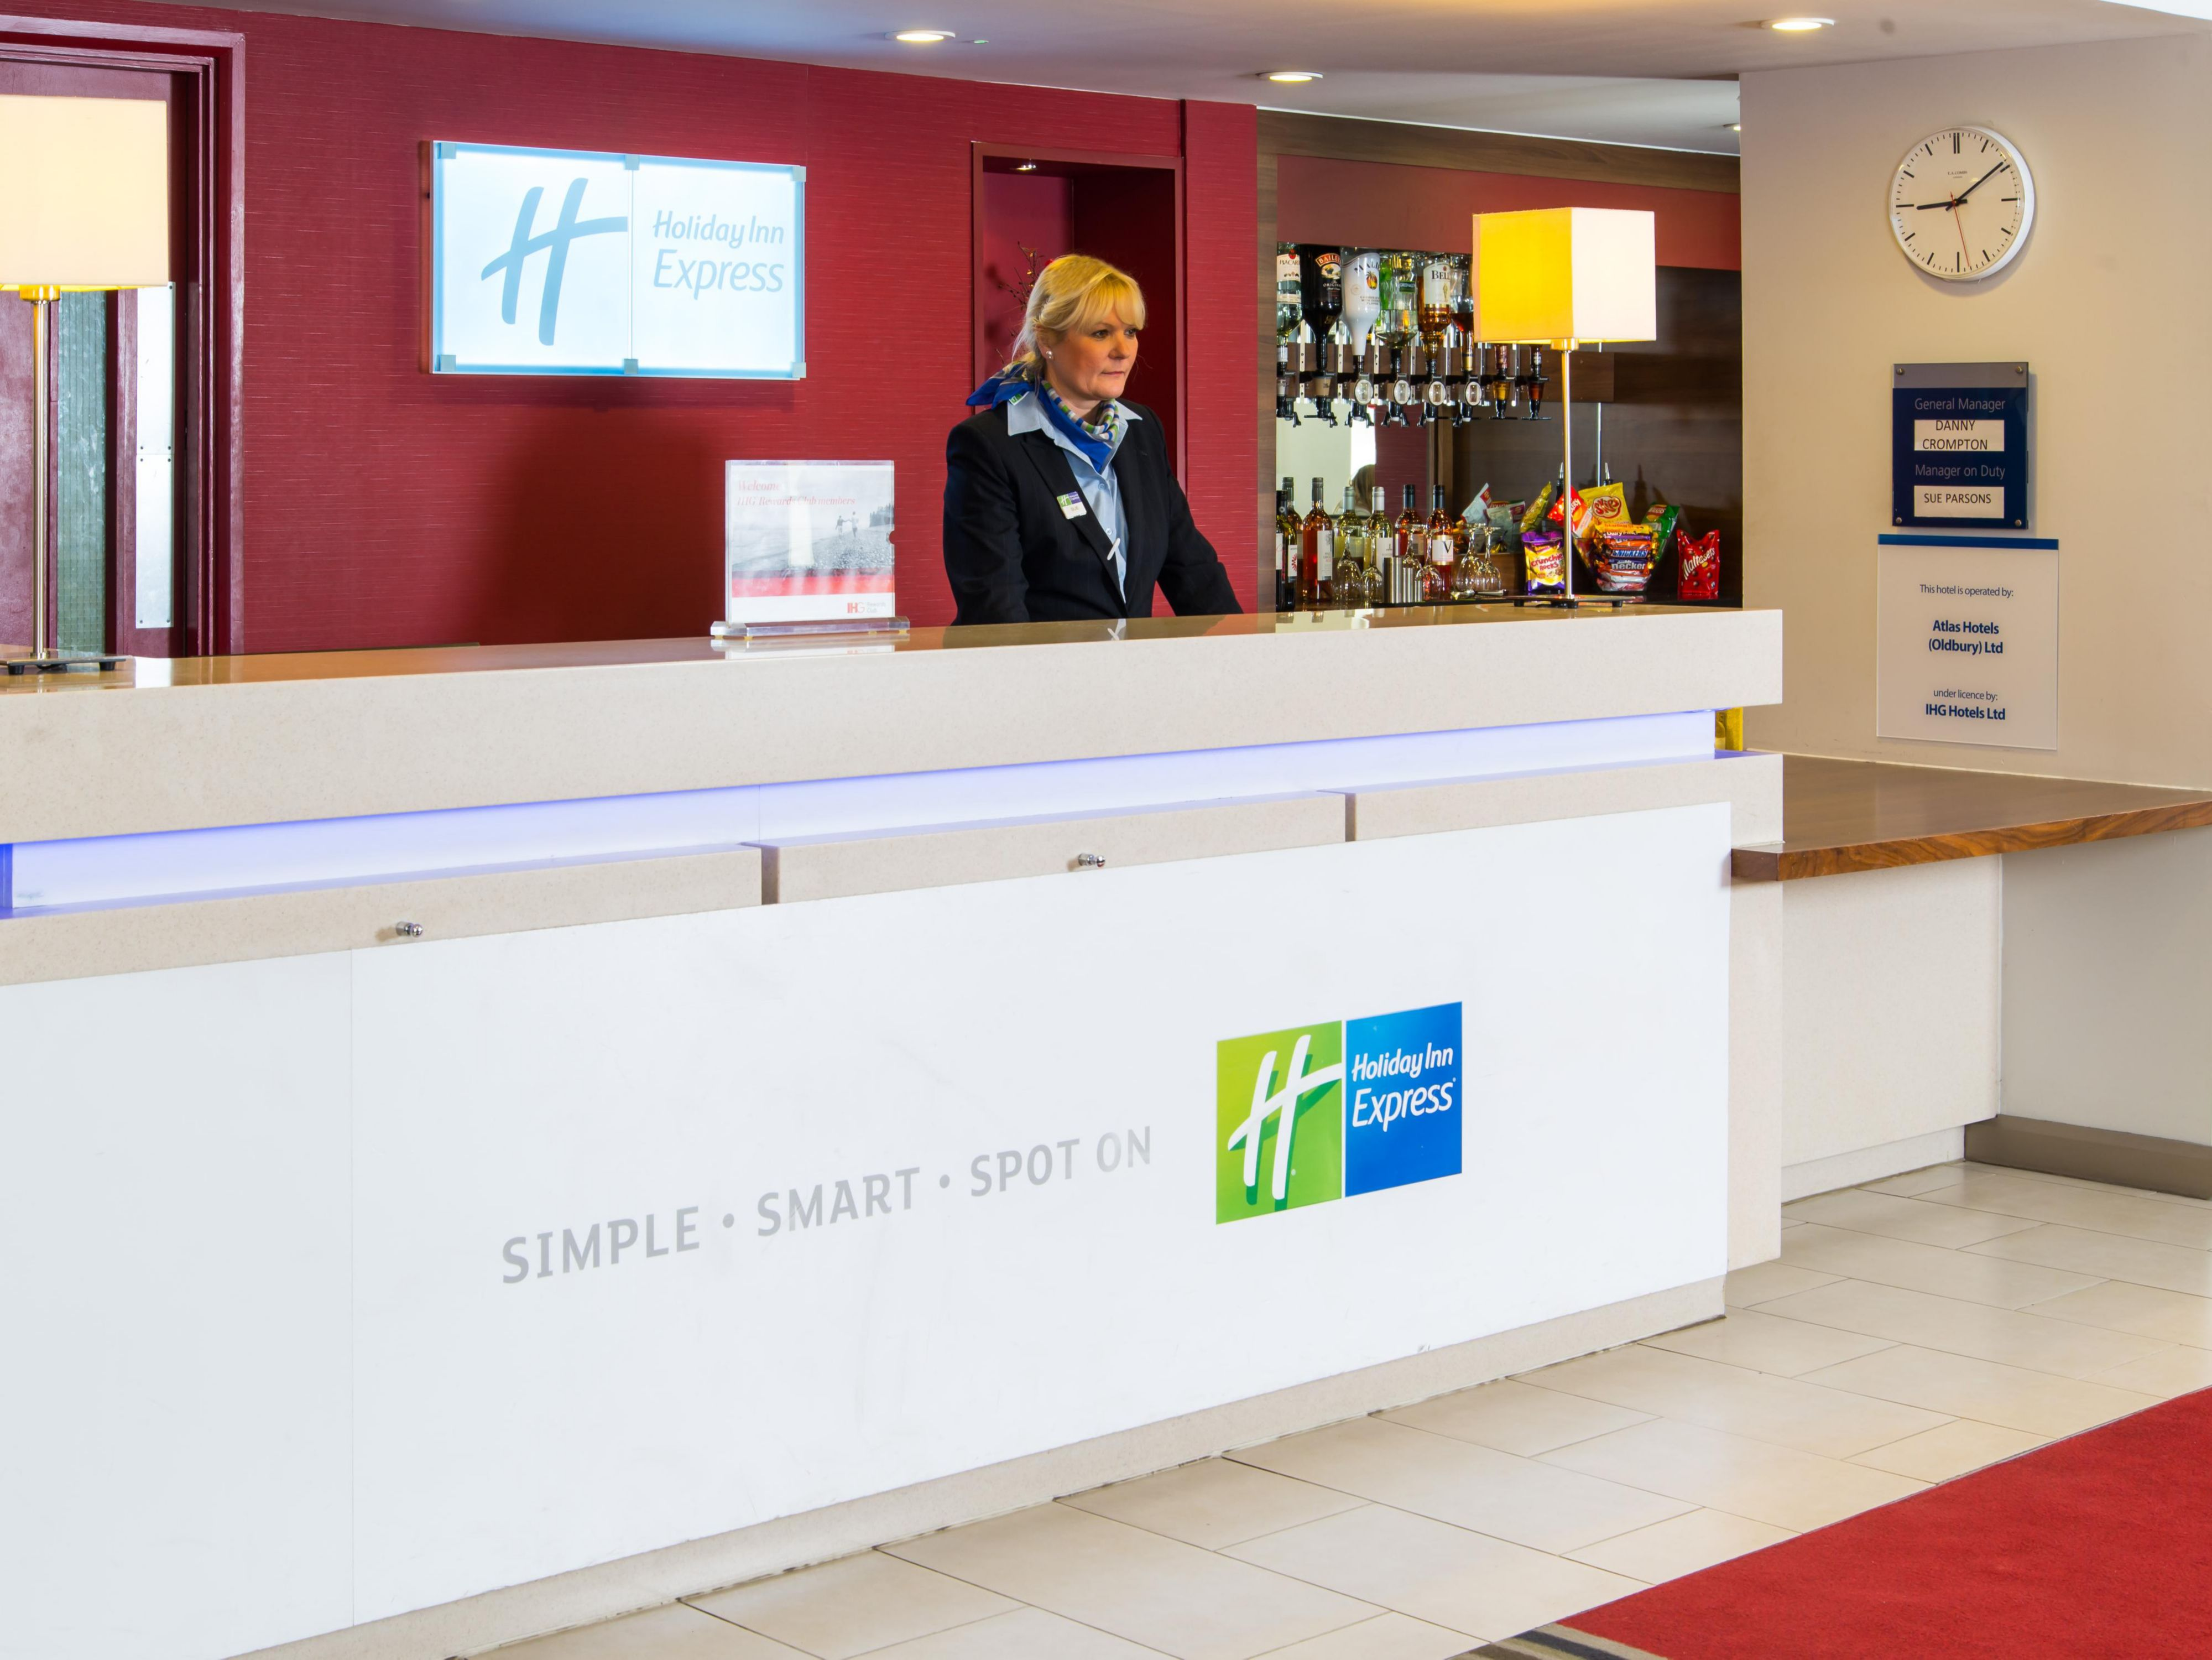 Our friendly Reception team are here for you at all times